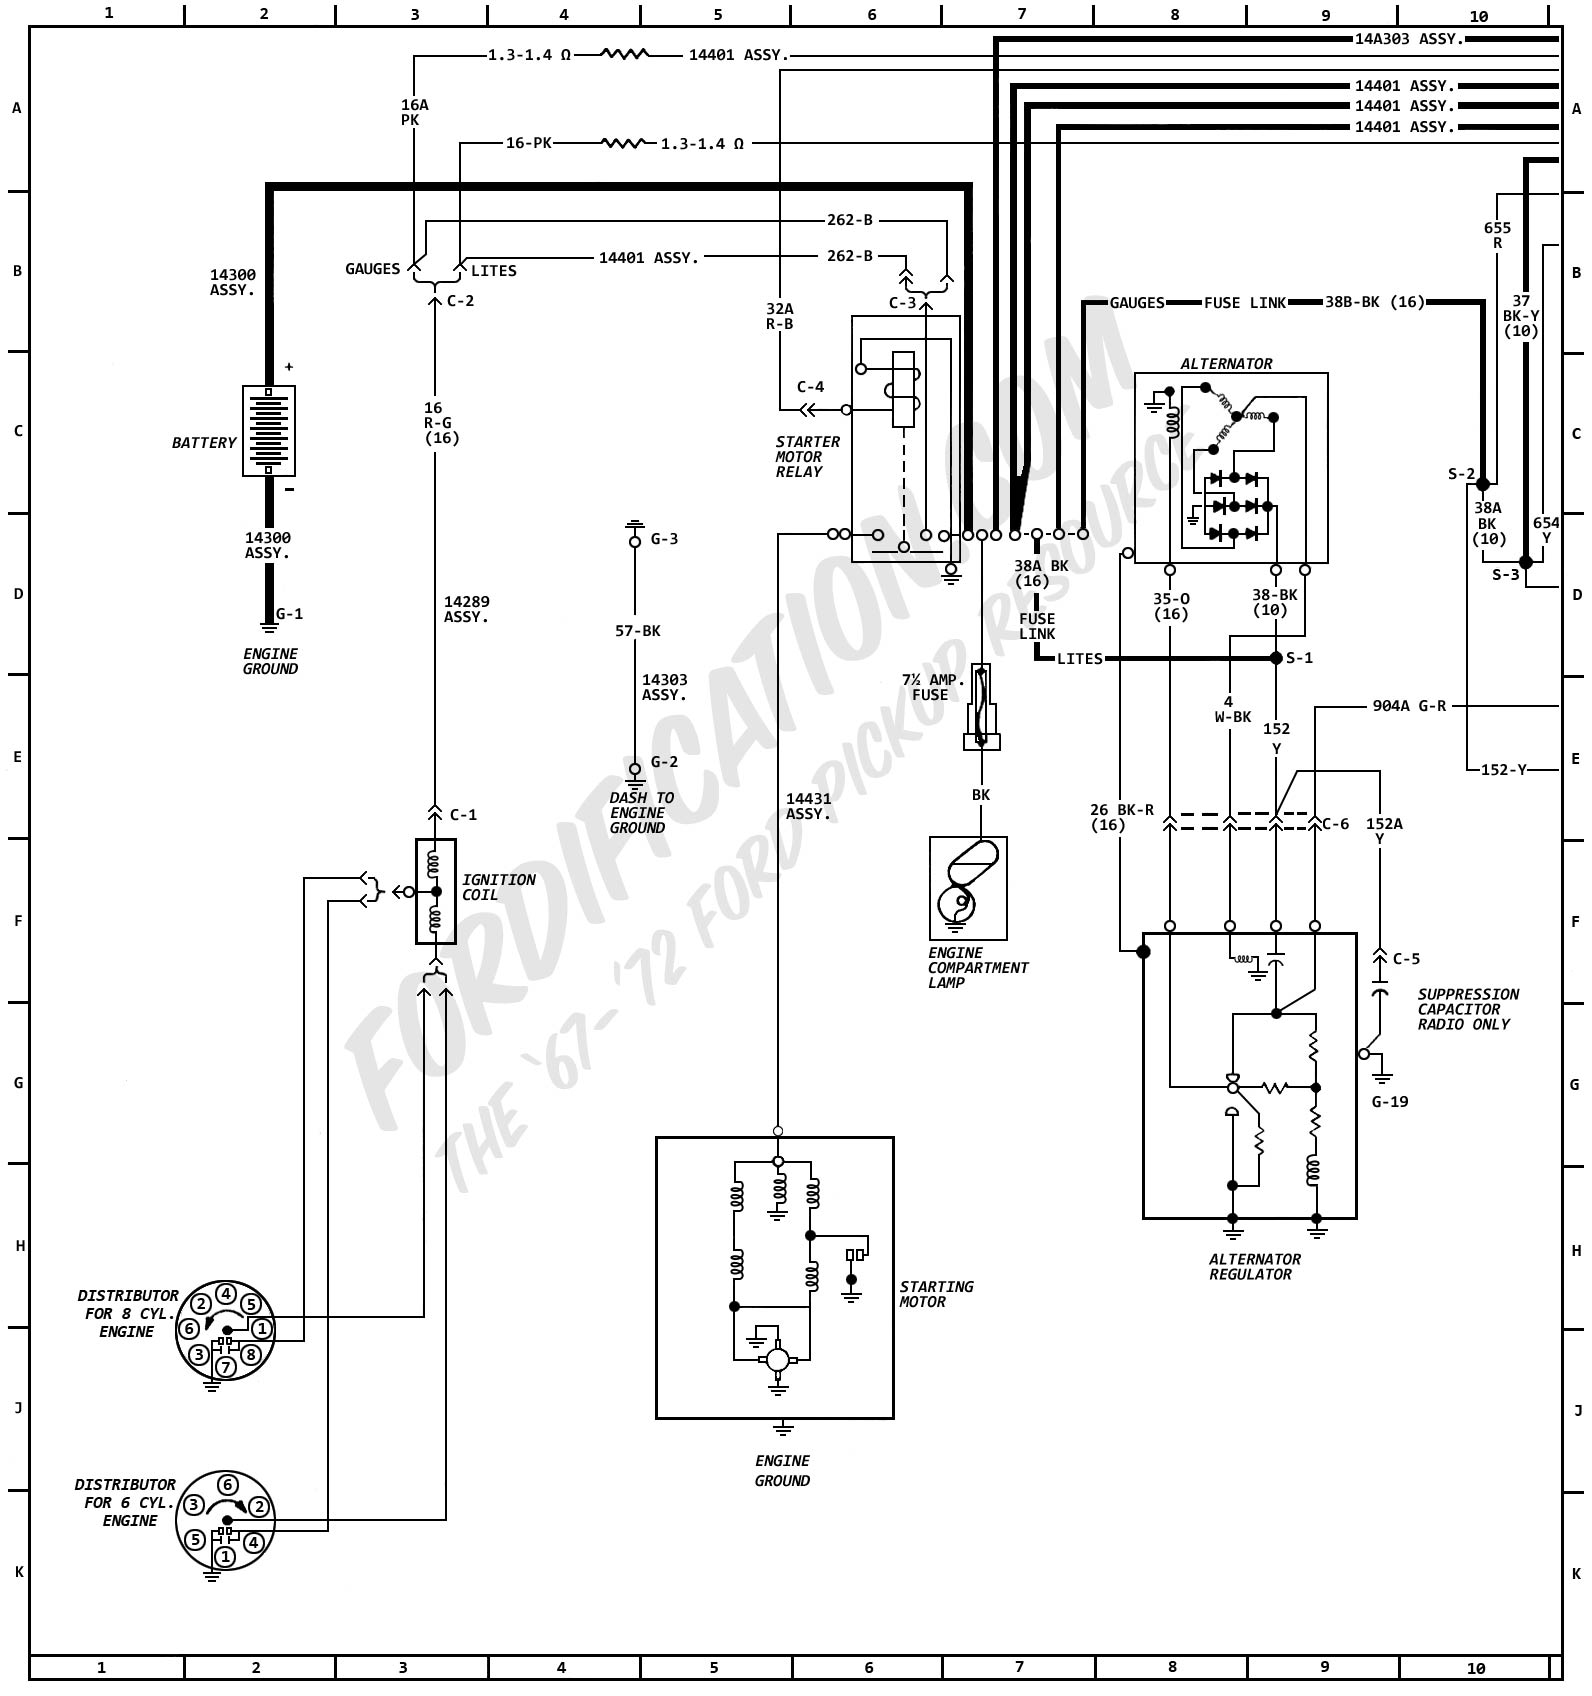 1972MasterWiring_01 1972 ford truck wiring diagrams fordification com 1971 ford f250 wiring diagram at love-stories.co